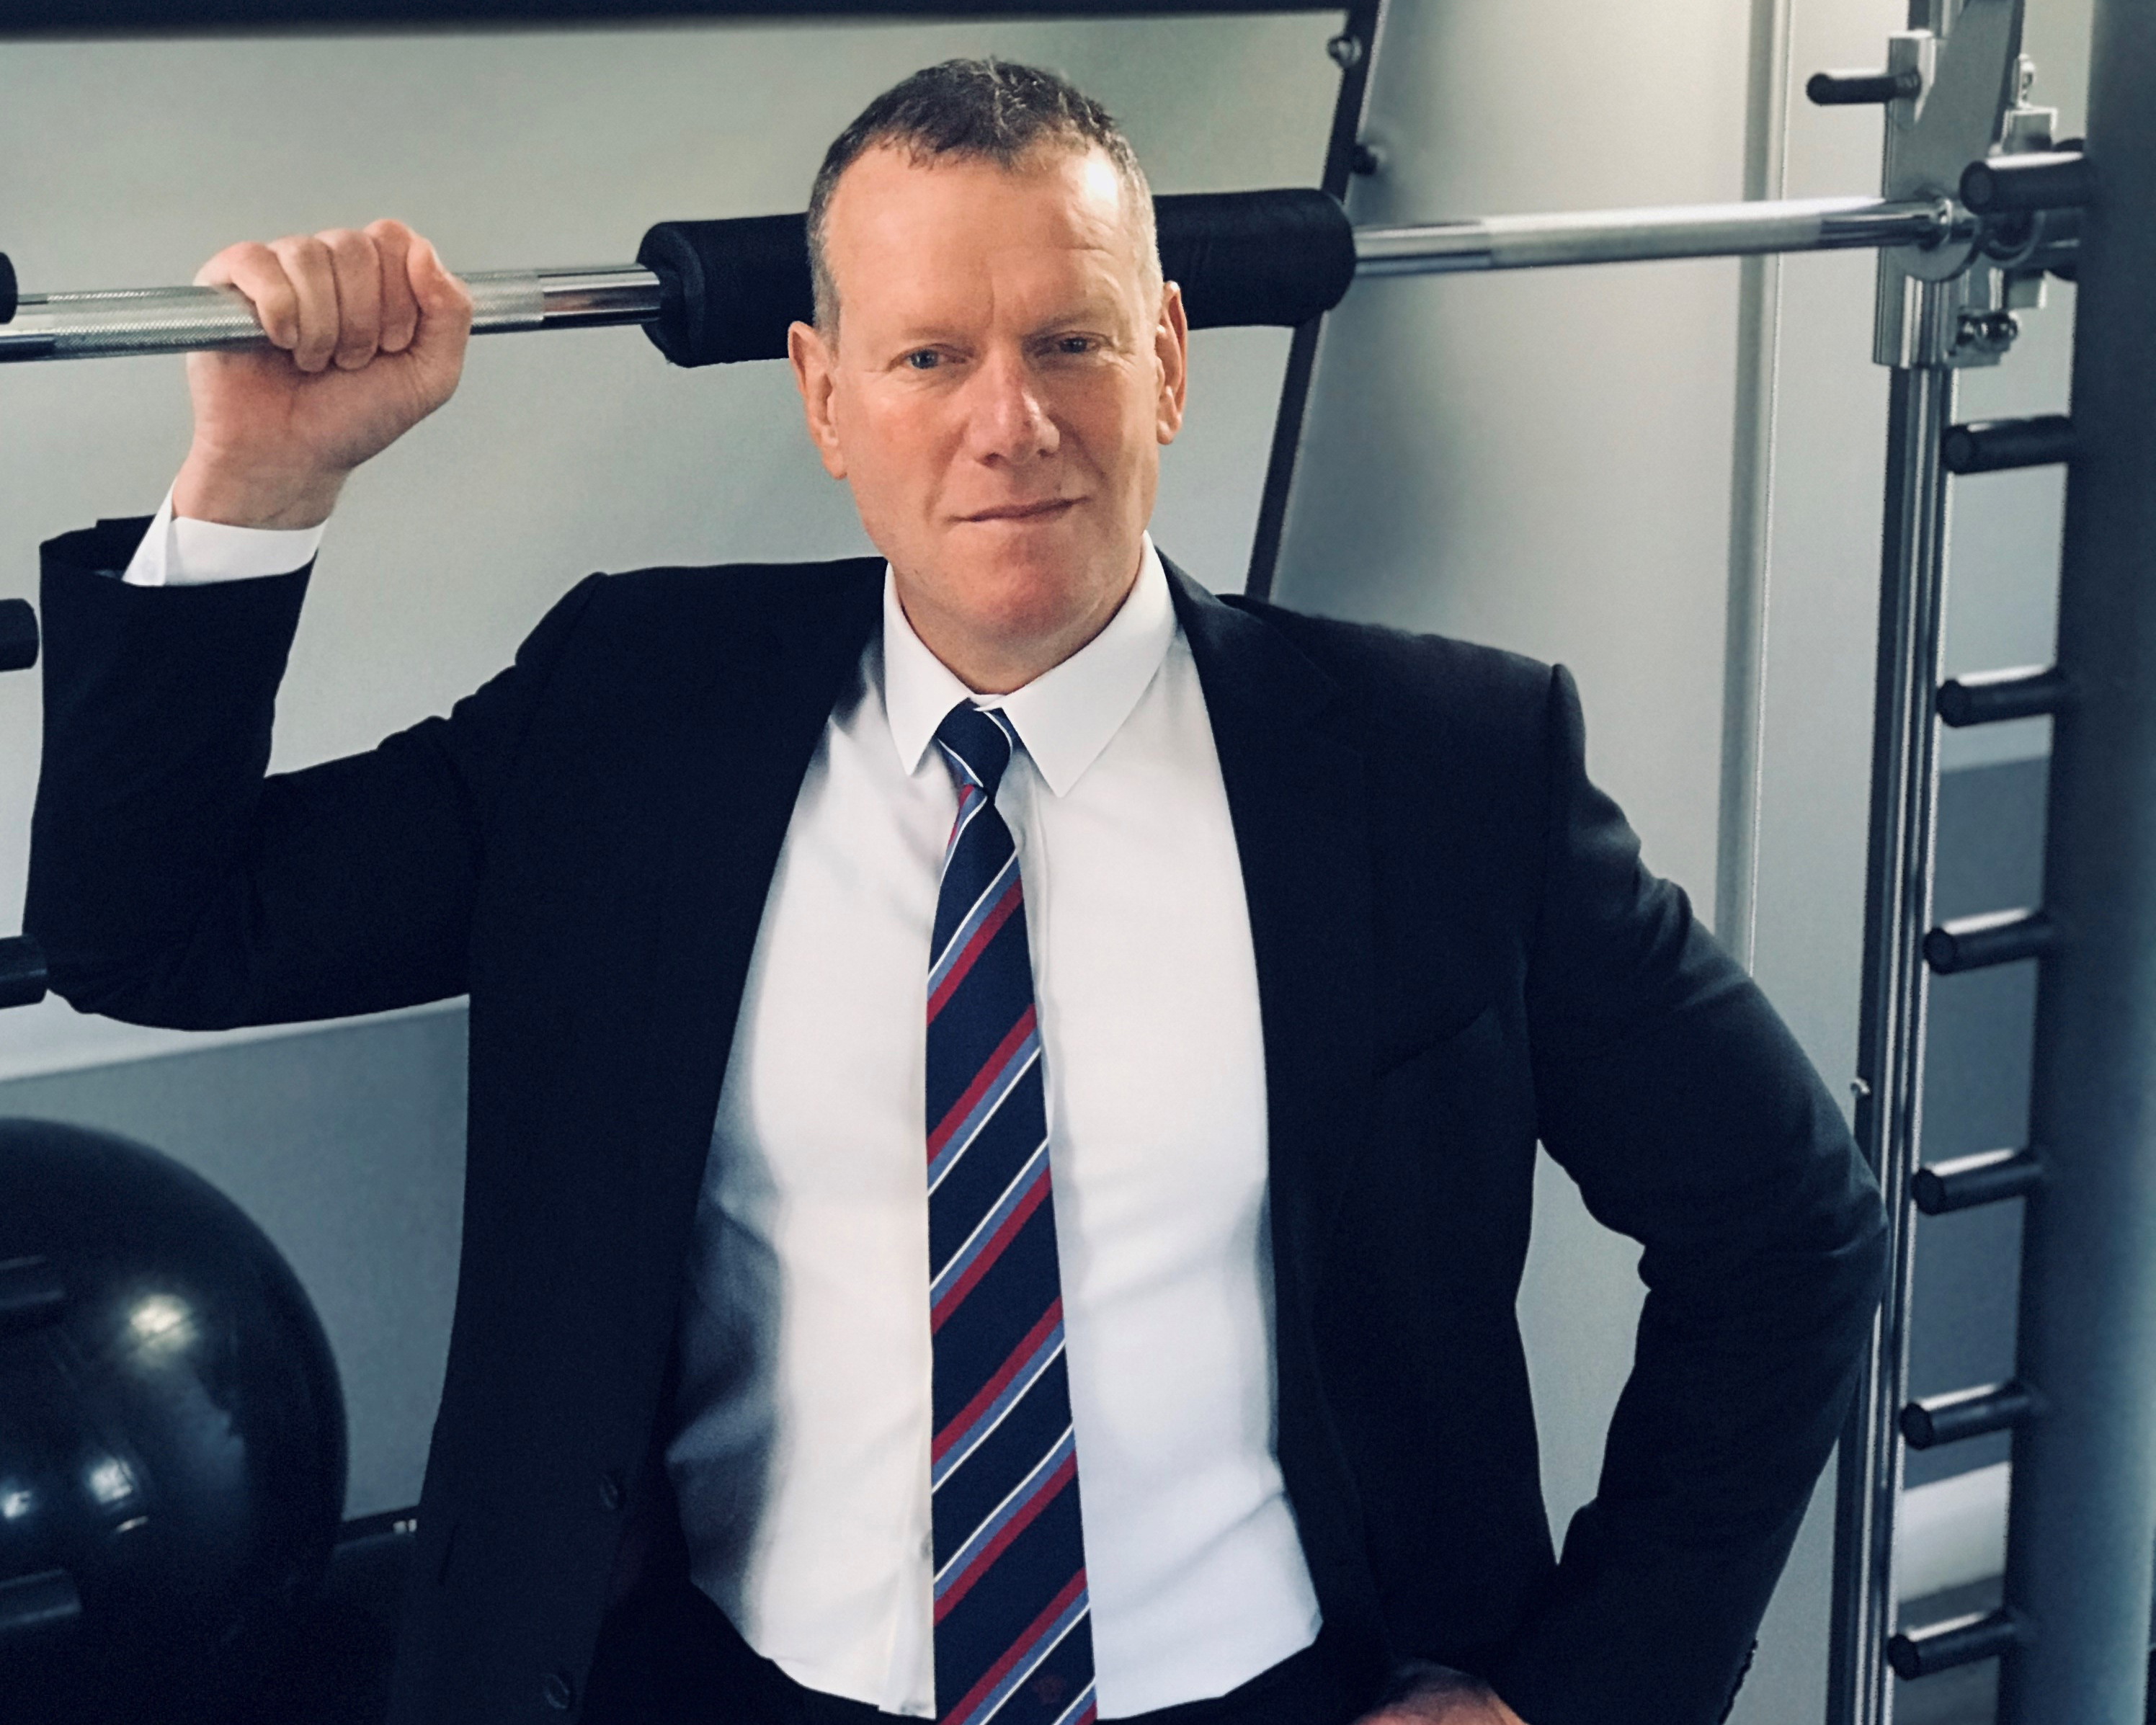 Clayton will be responsible for the company's growth in the commercial health and fitness markerts